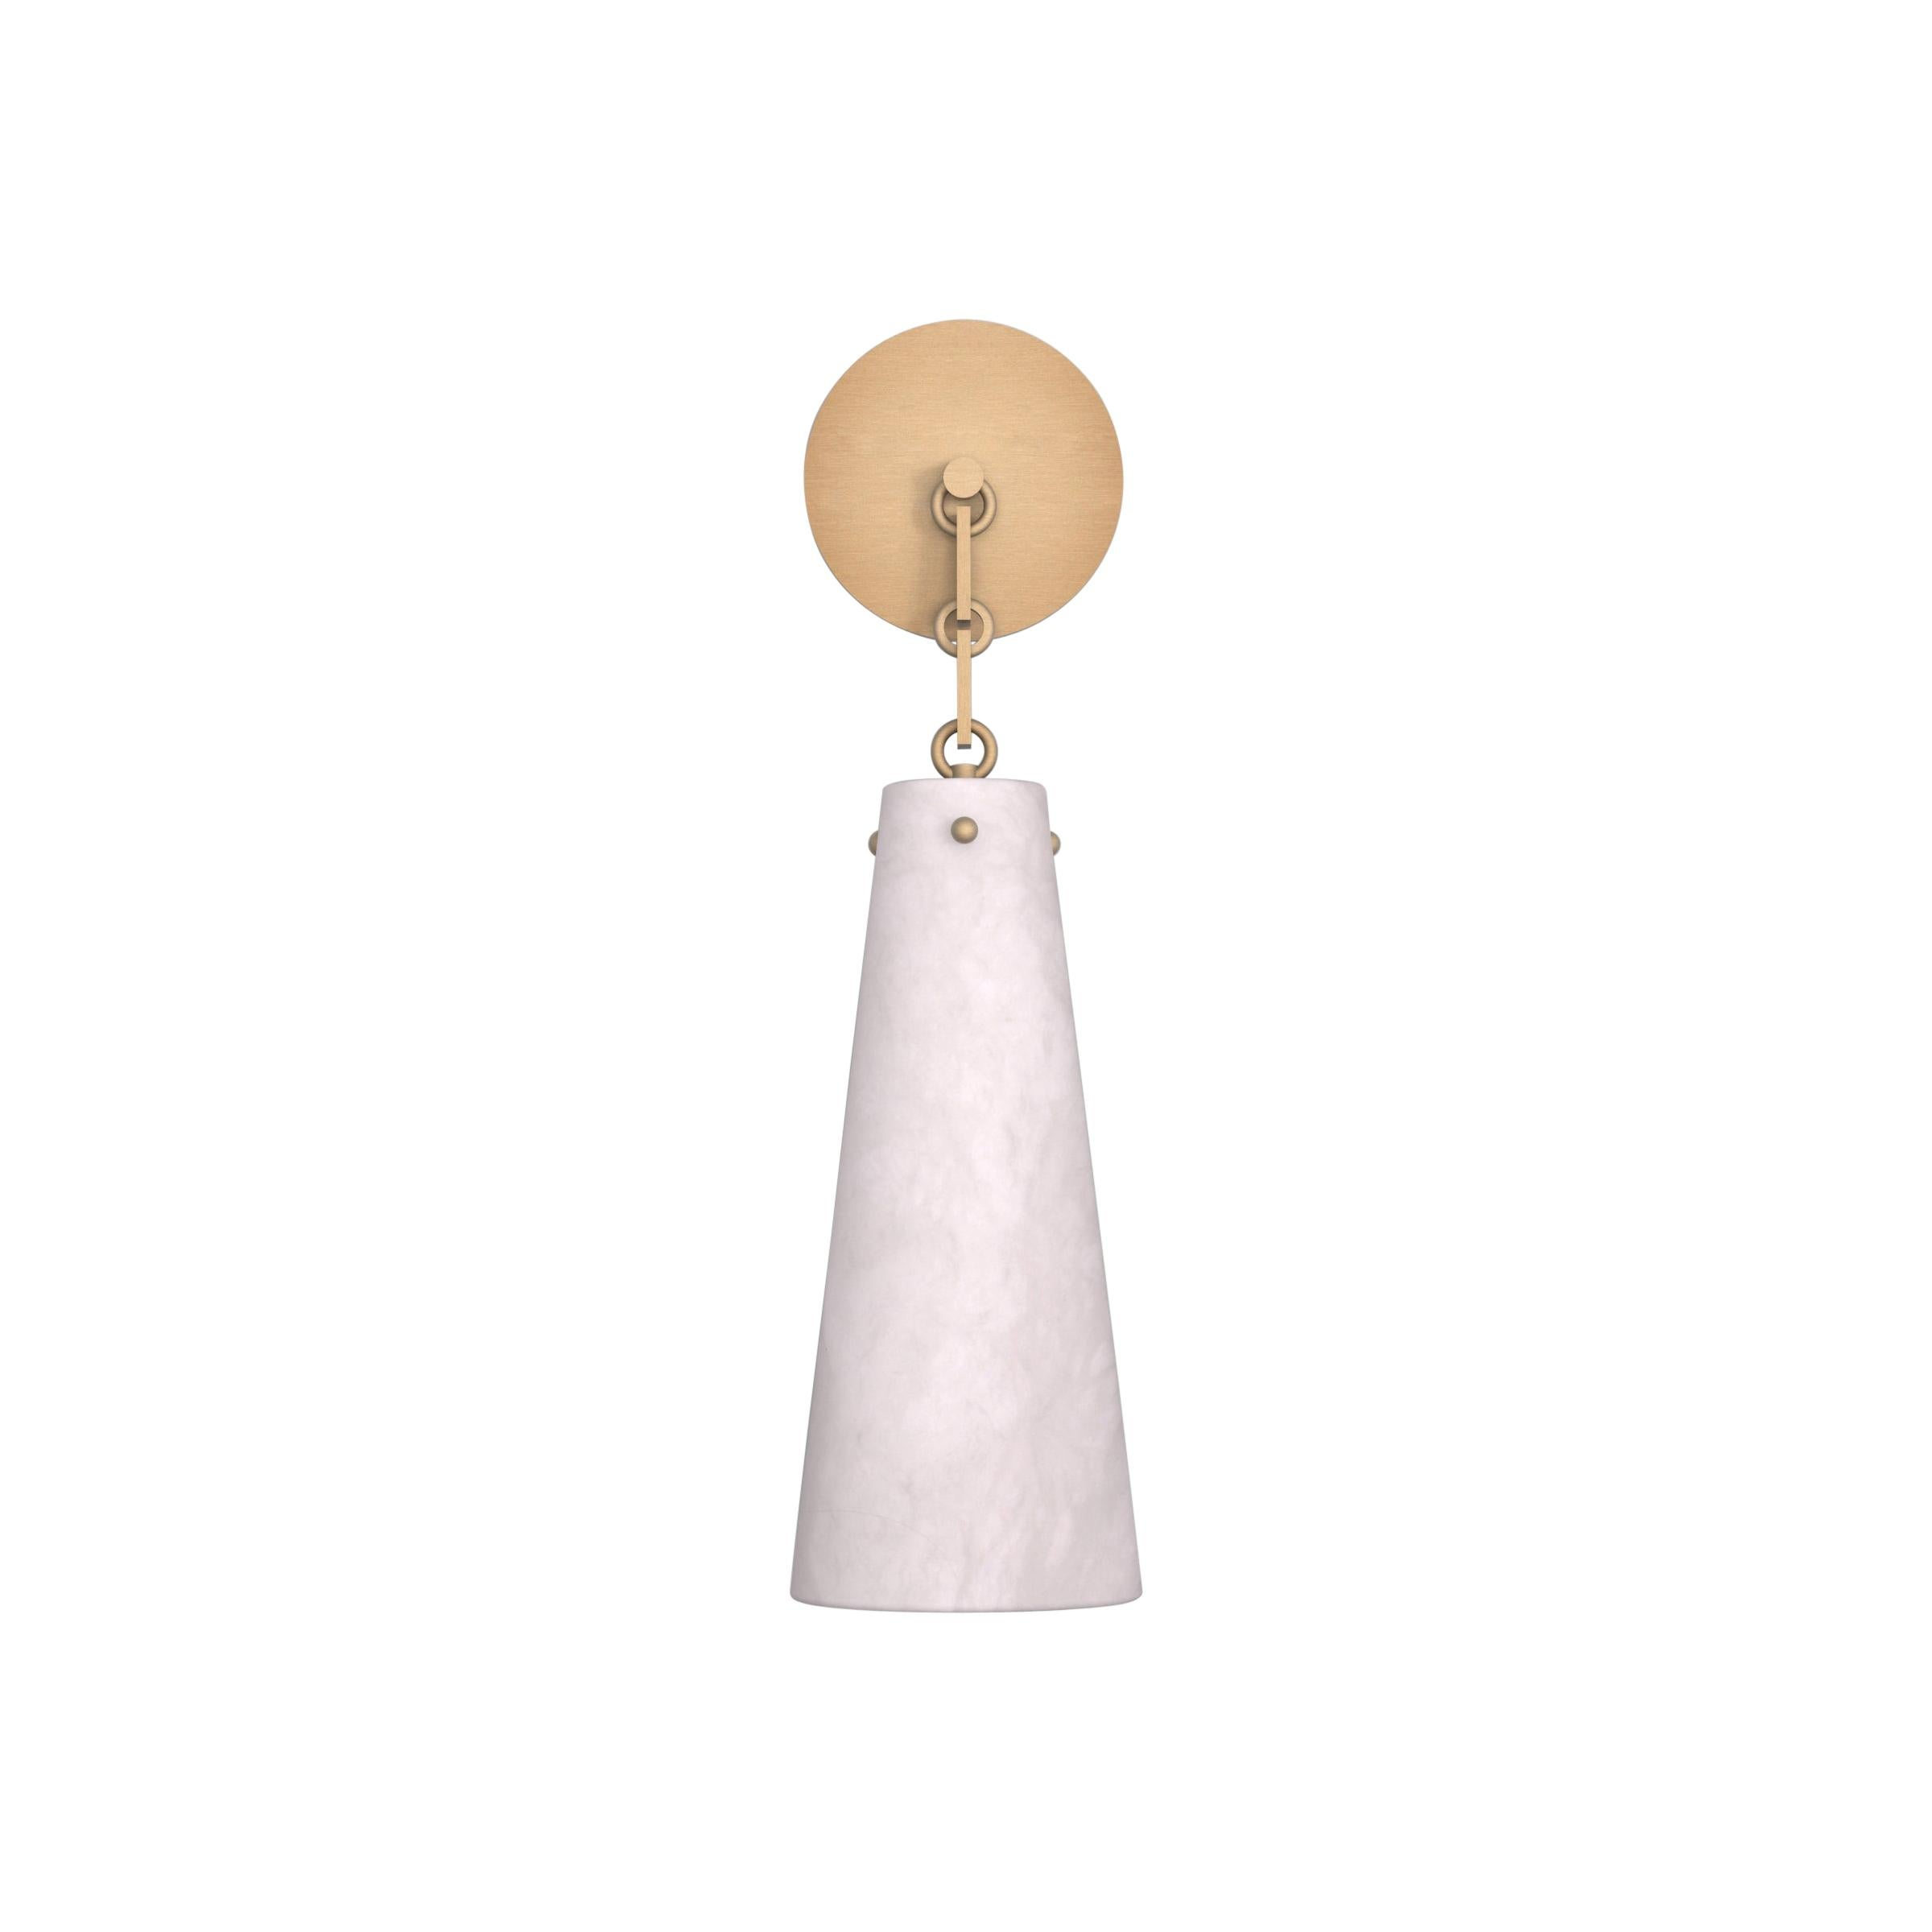 Contemporary 202A Sconce in Alabaster by Orphan Work, 2021